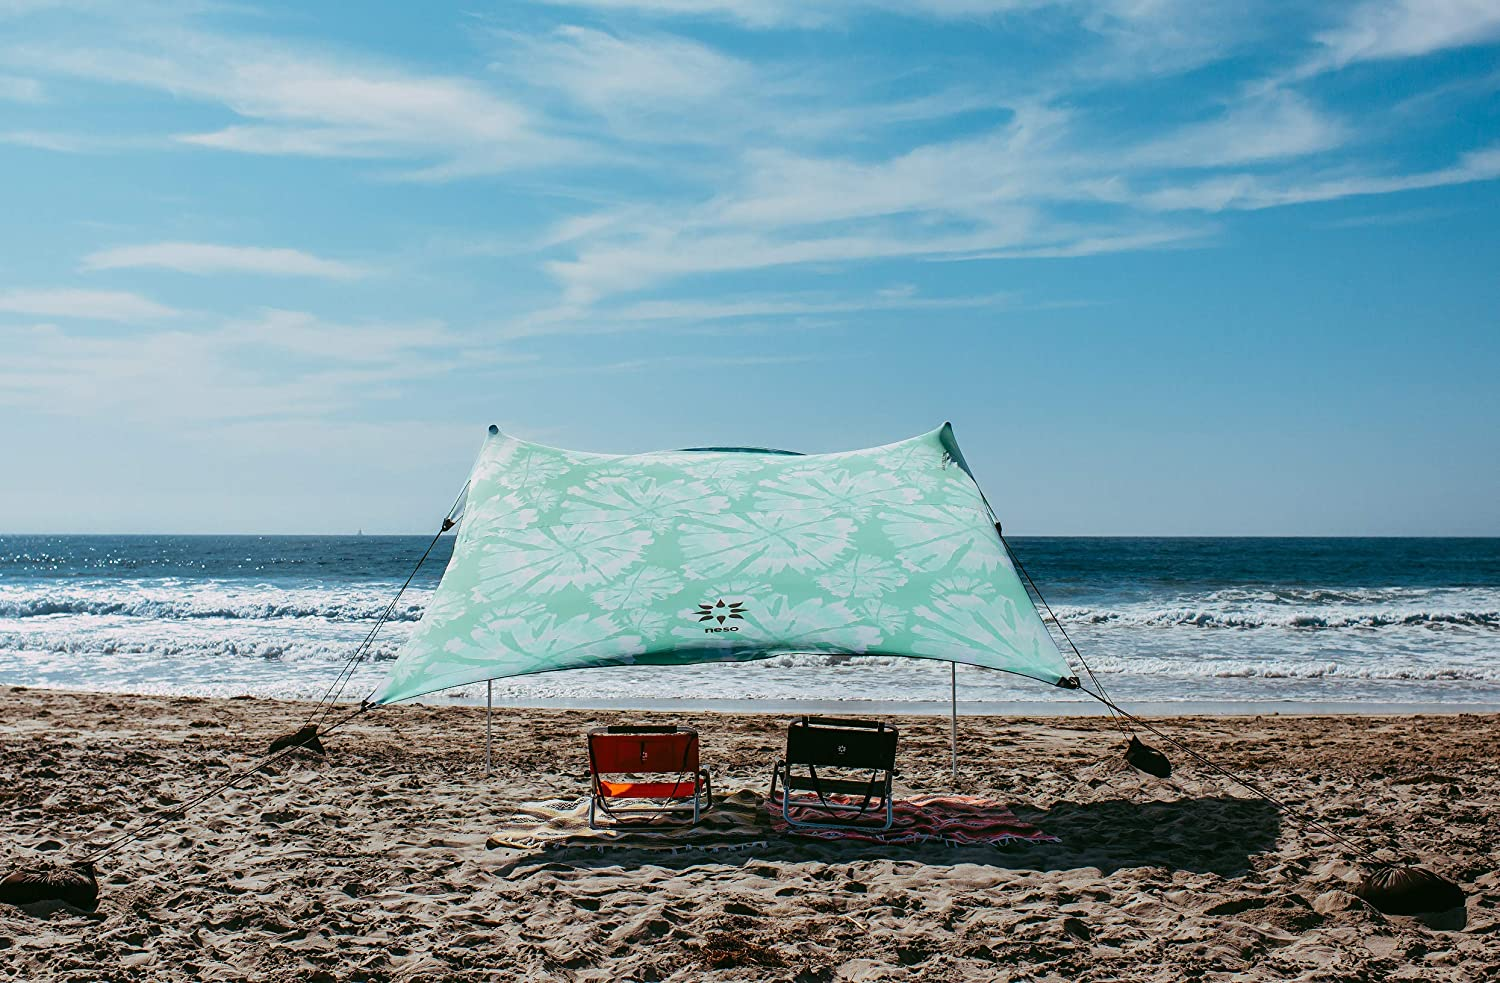 Neso Tents Grande Beach Tent 7ft Corn 9ft Tall Reinforced x 9 Branded goods Max 79% OFF